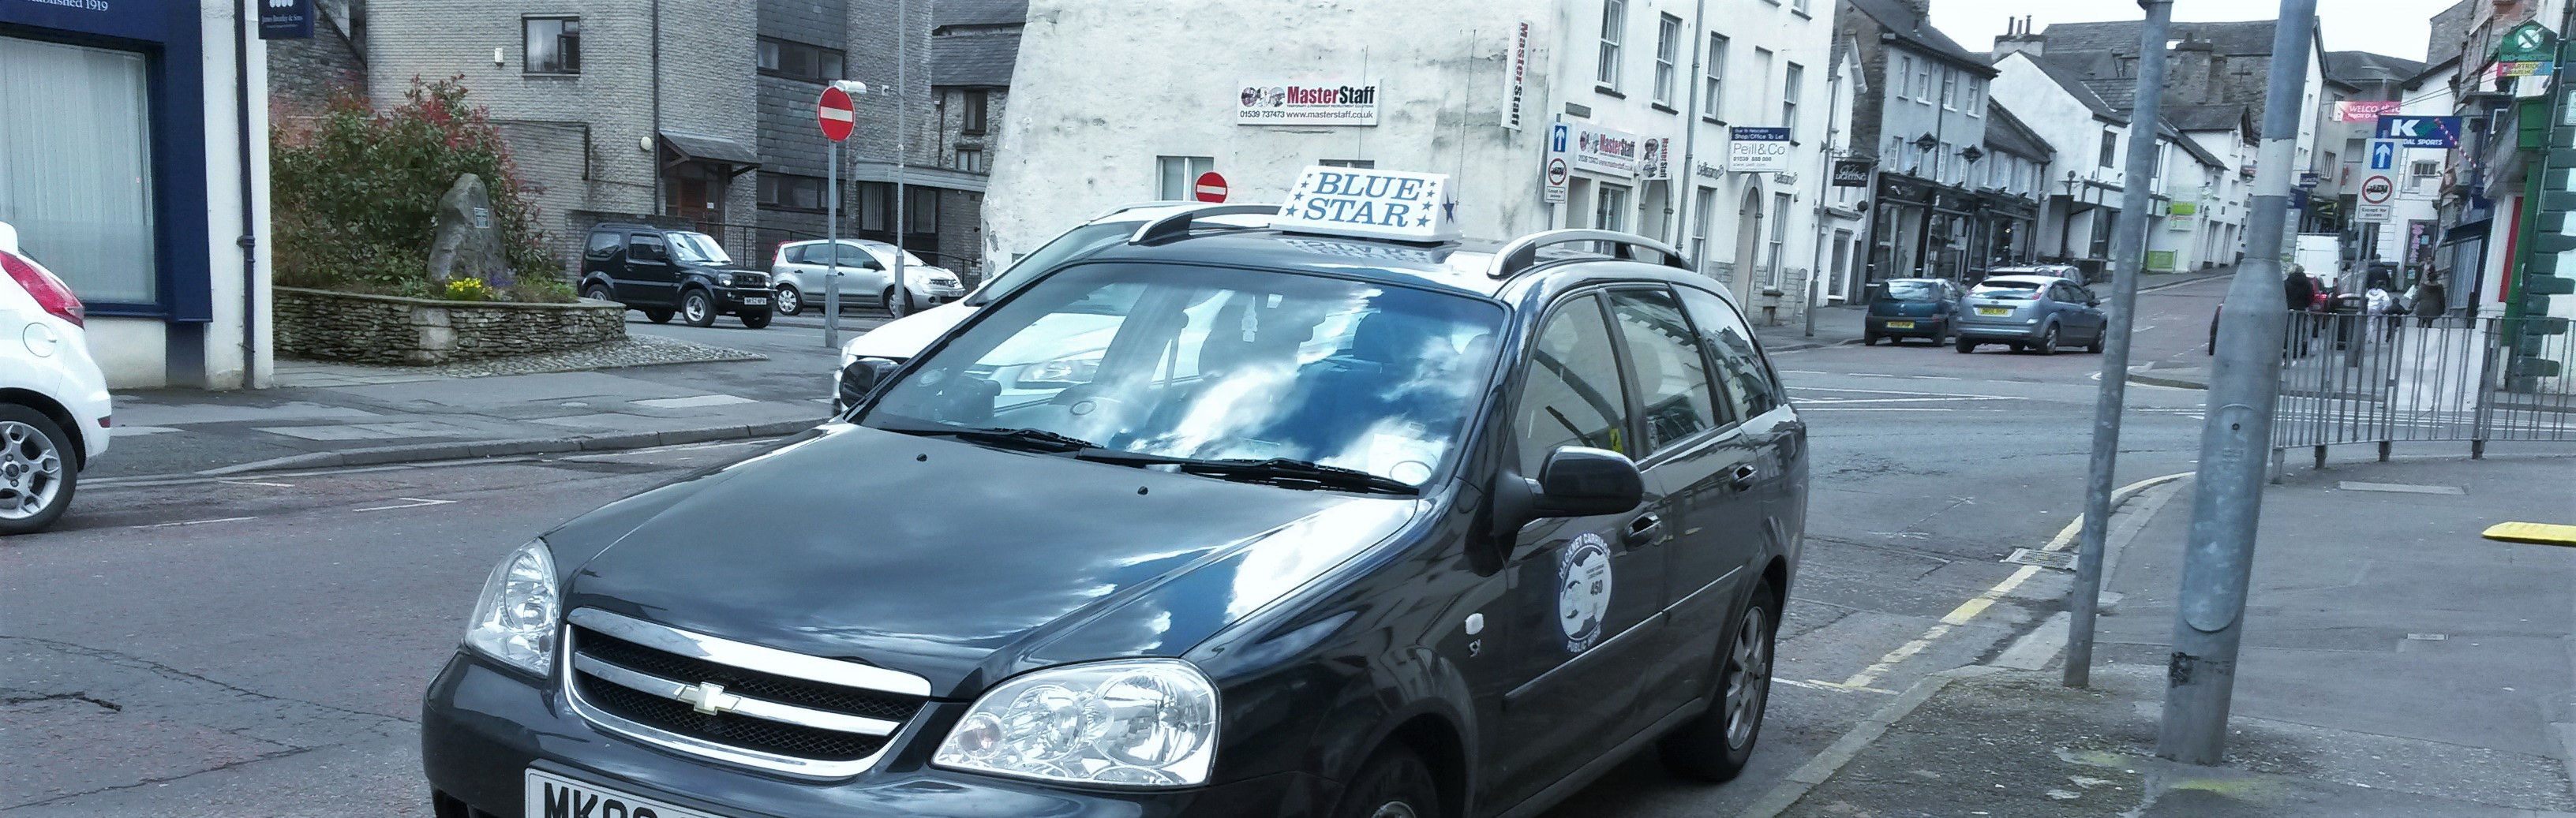 Book a Taxi with Blue Star Taxis Today on 01539 723 670